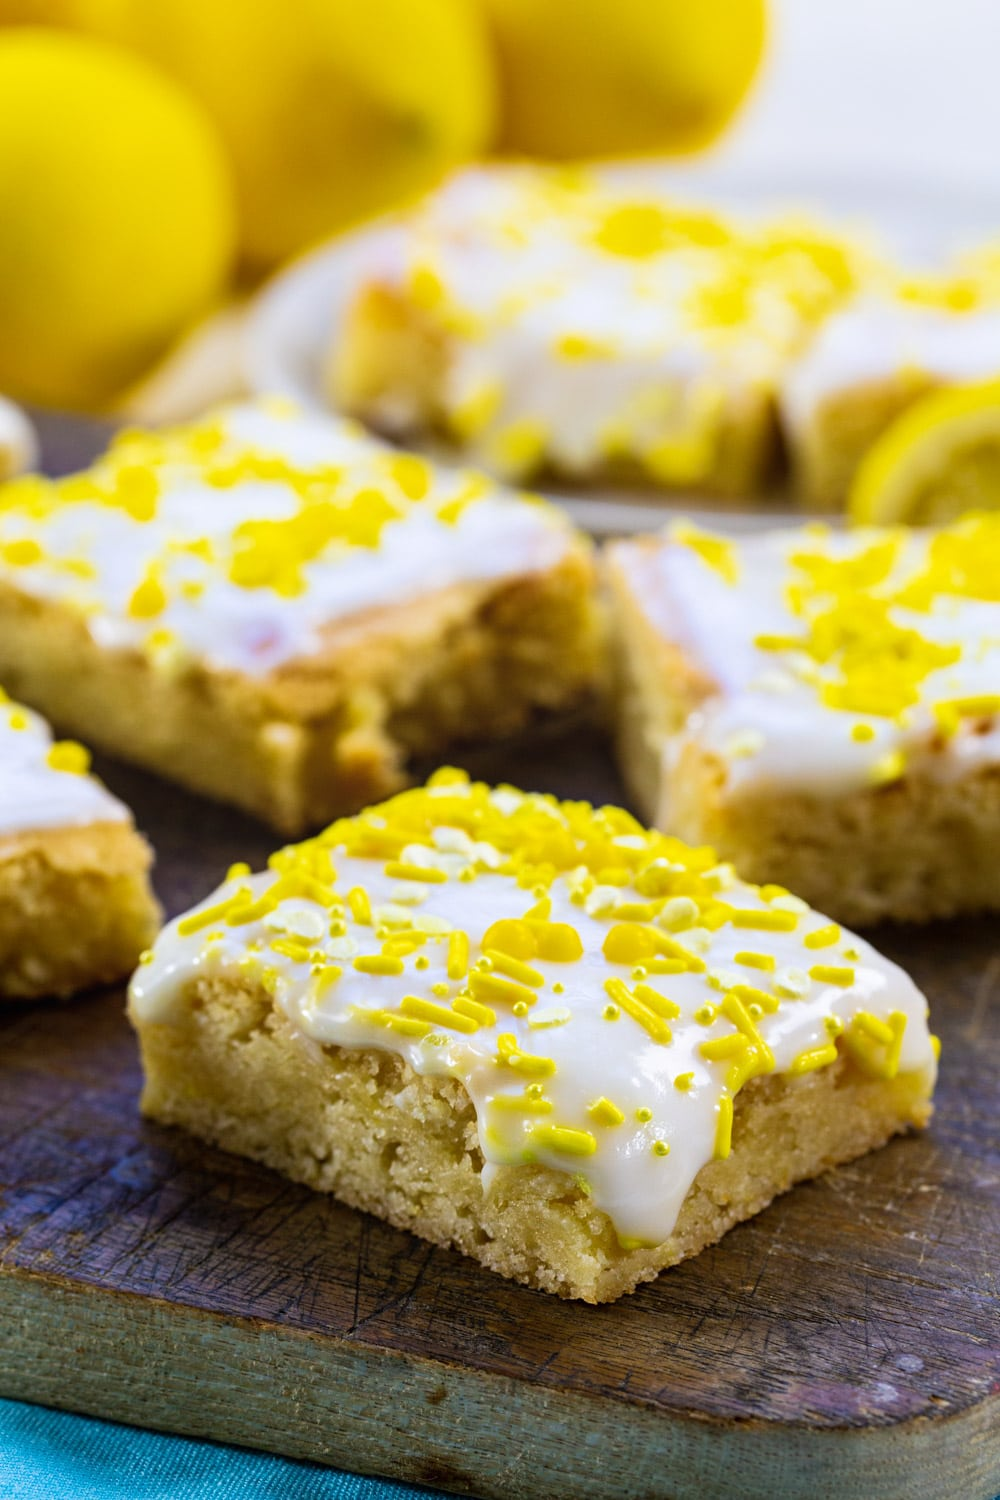 Lemon Cookie Bars topped with glaze and sprinkles.